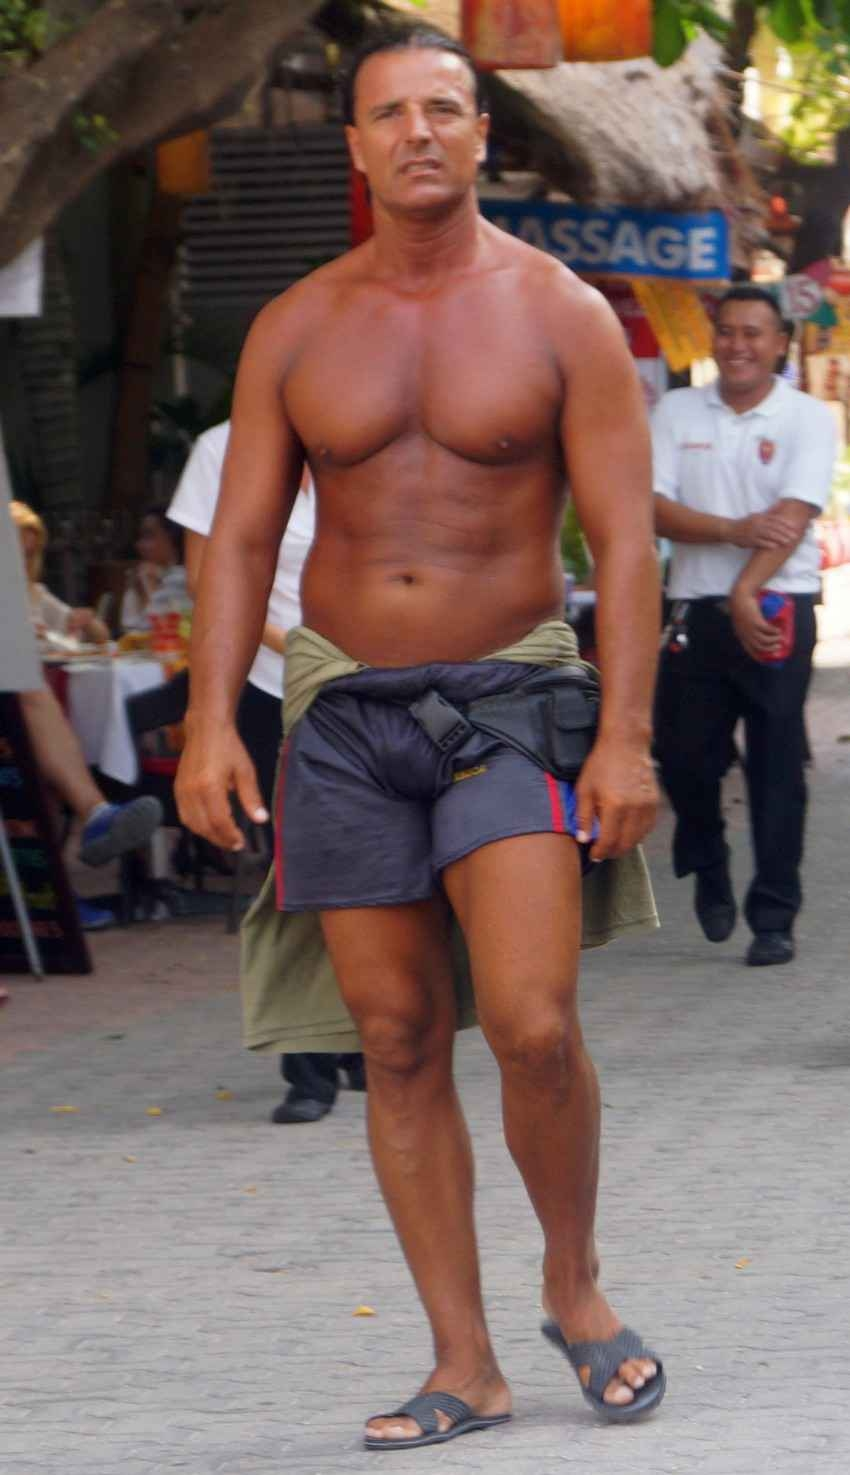 A darkly tanned and muscular man not wearing a shirt.